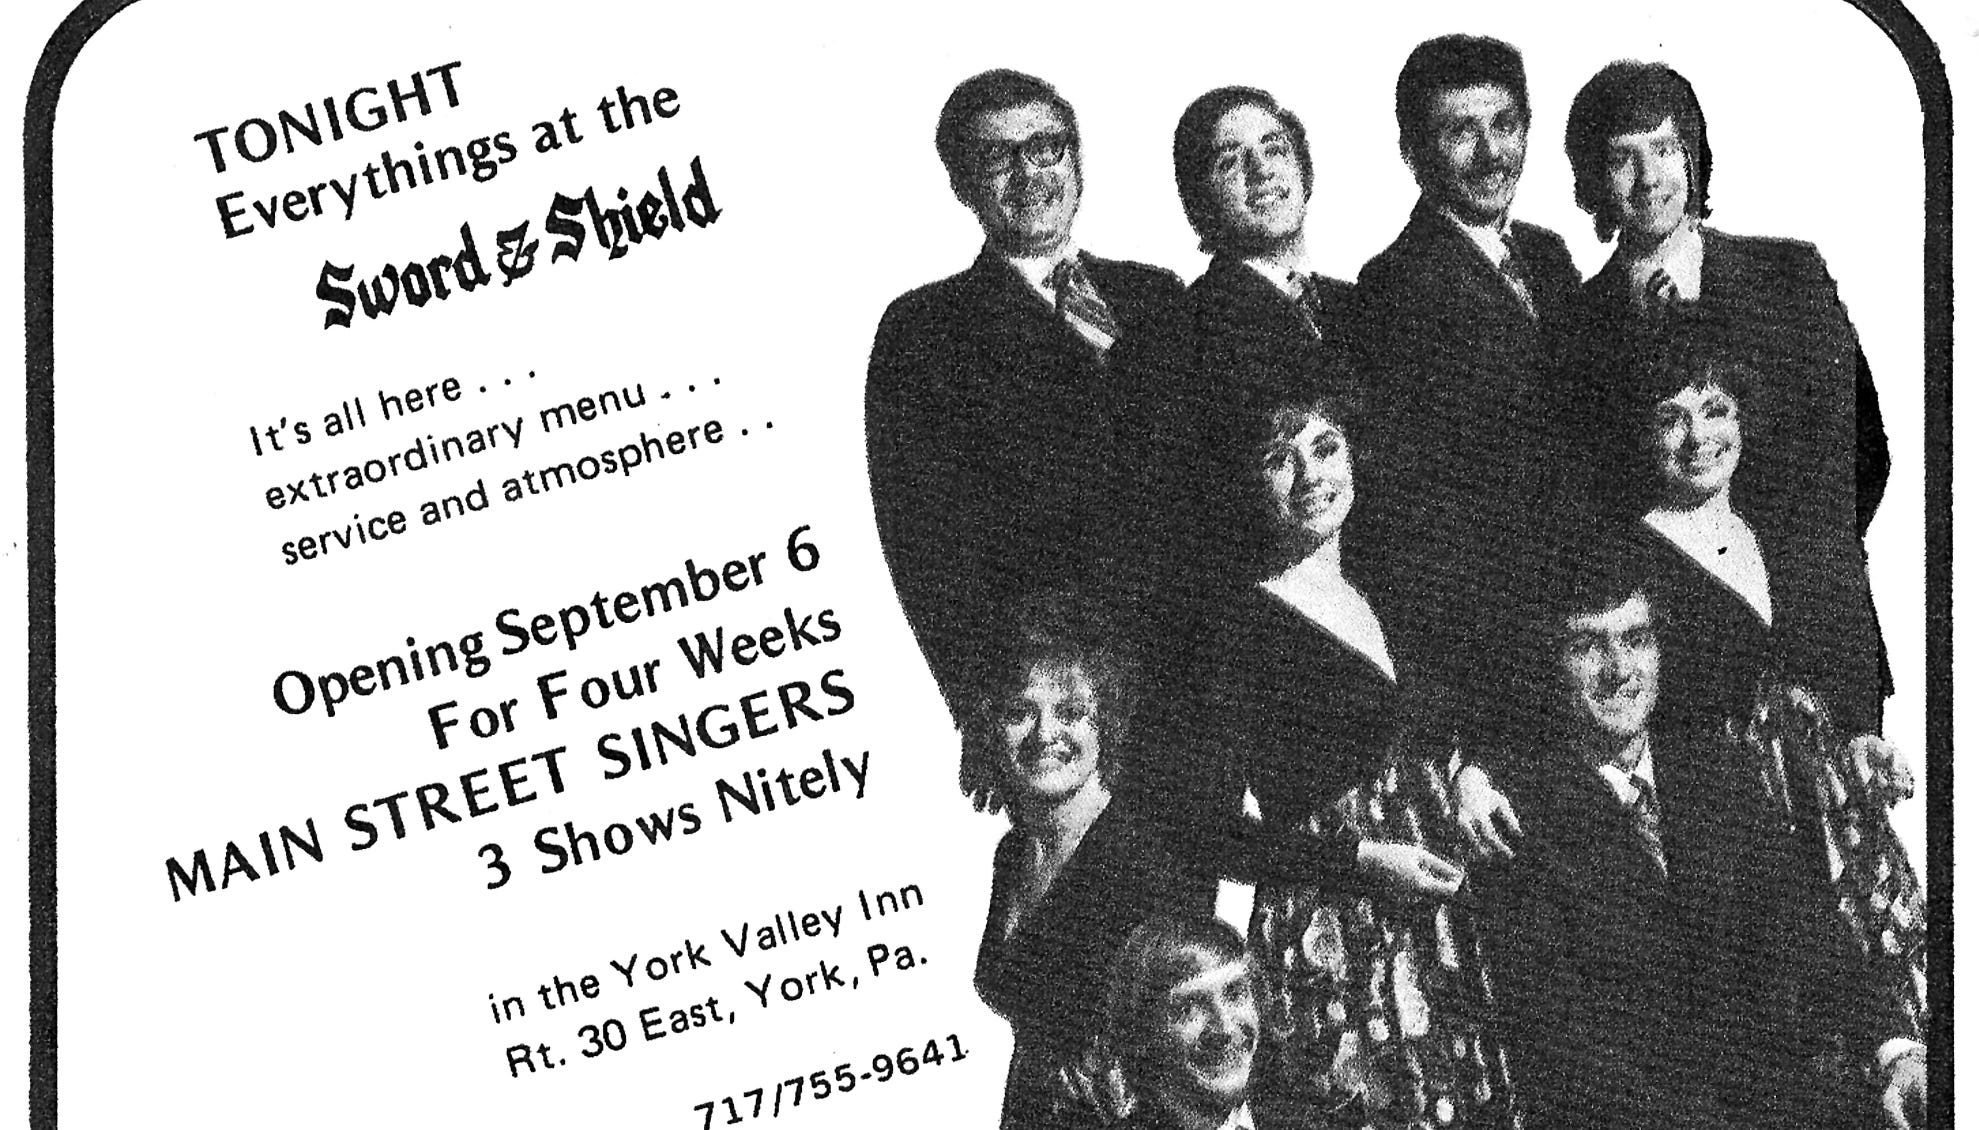 """This advertisement from former York restaurant the Sword & Shield at the York Valley Inn was from a 1971 edition of """"This Month"""" magazine and was submitted by Regina (Tufarolo) Altland"""